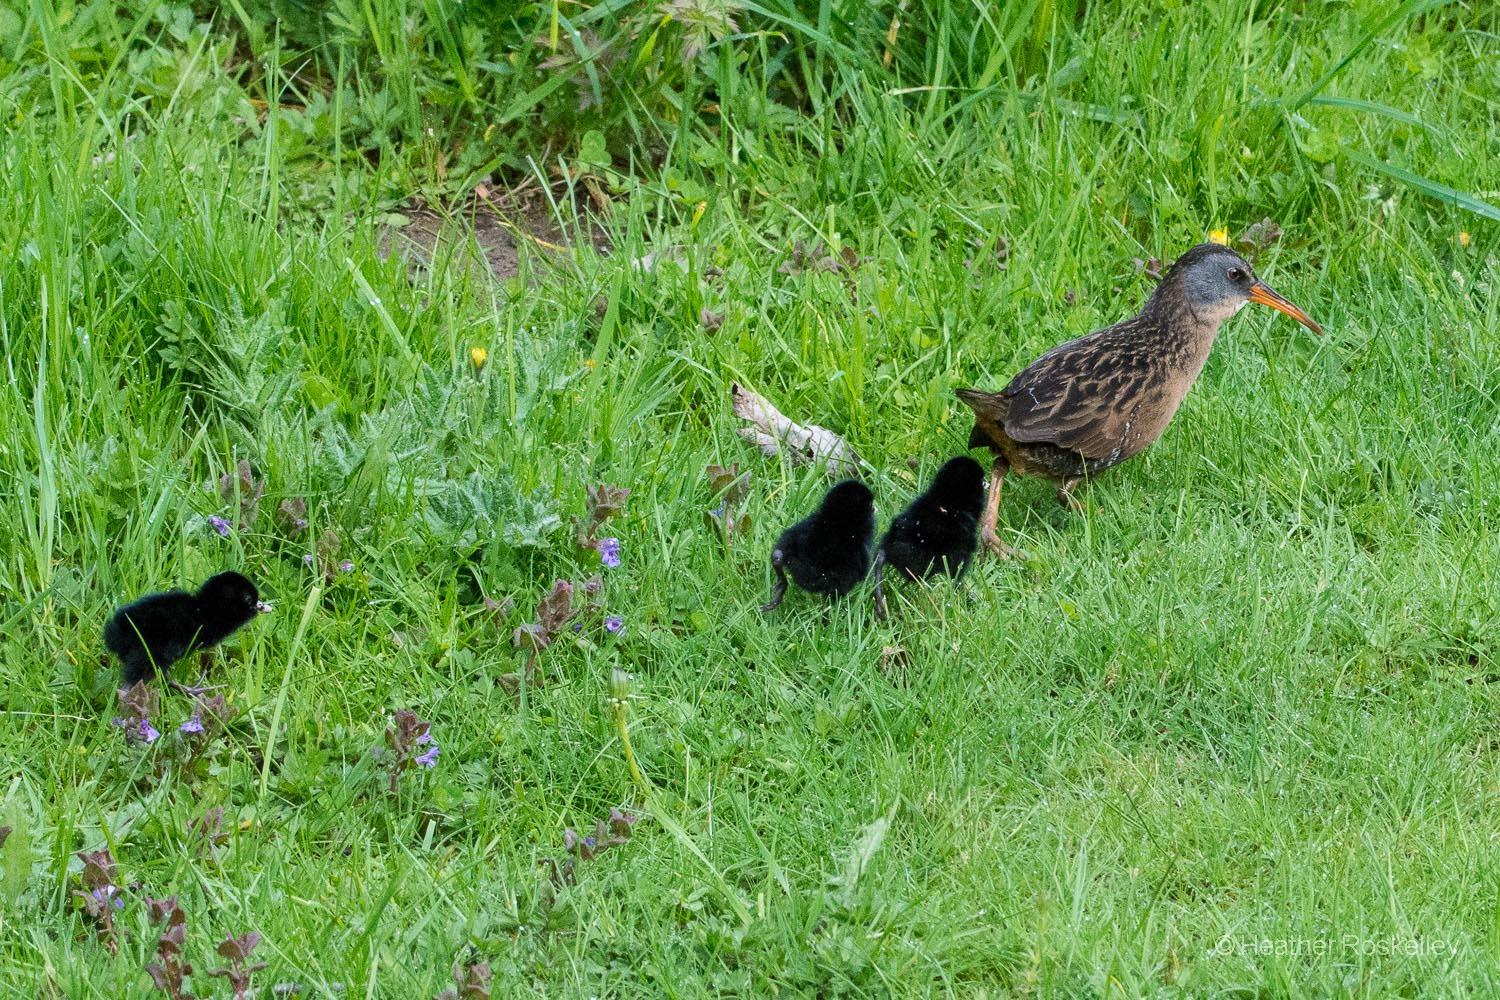 The Virginia Rail family continues on their journey. Some of the vegetation is taller than the chicks, making it hard for them to keep up with mom.